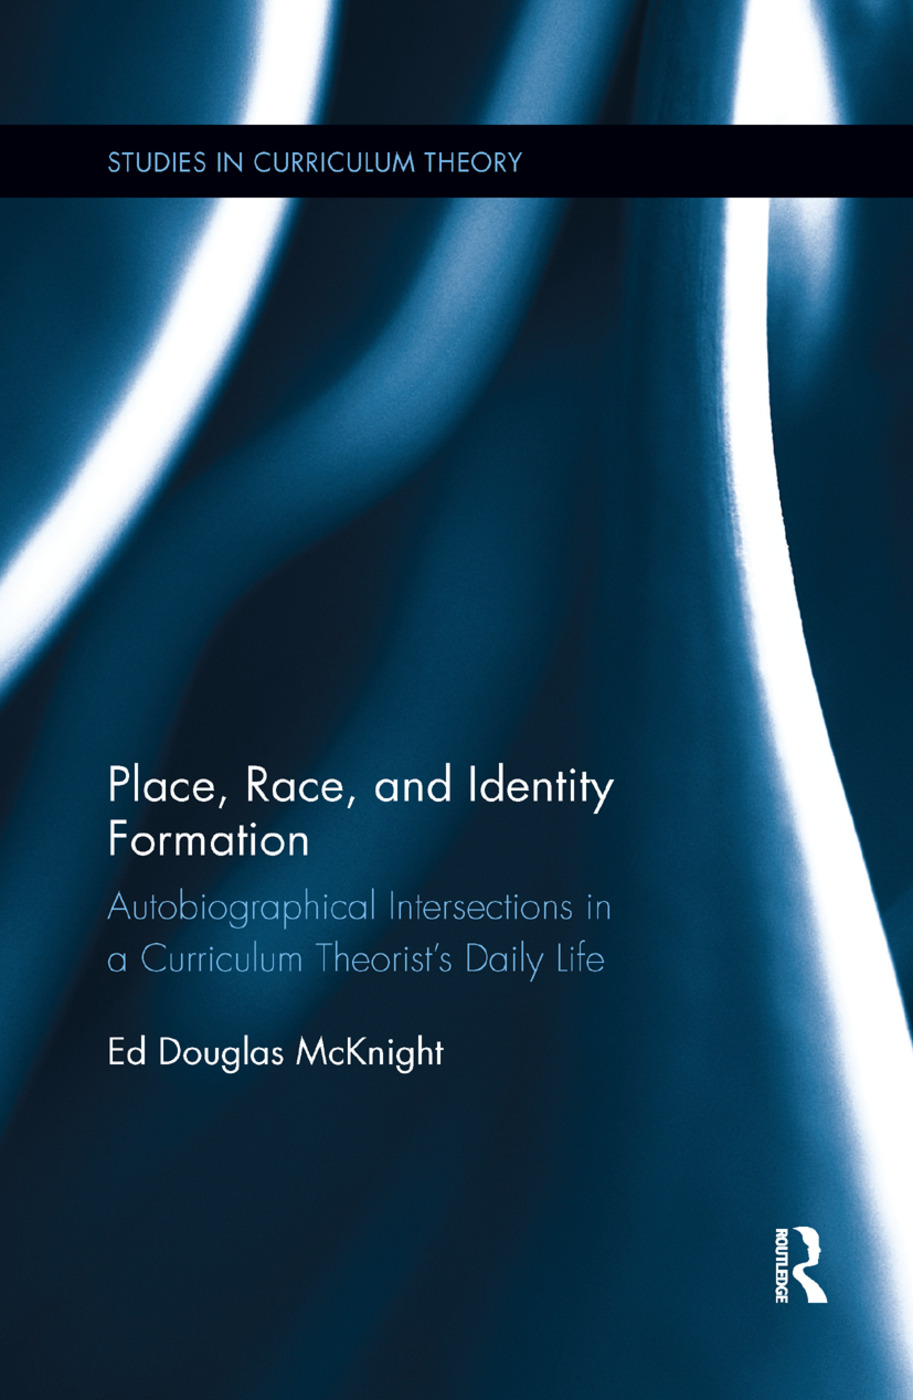 Place, Race, and Identity Formation: Autobiographical Intersections in a Curriculum Theorist's Daily Life book cover